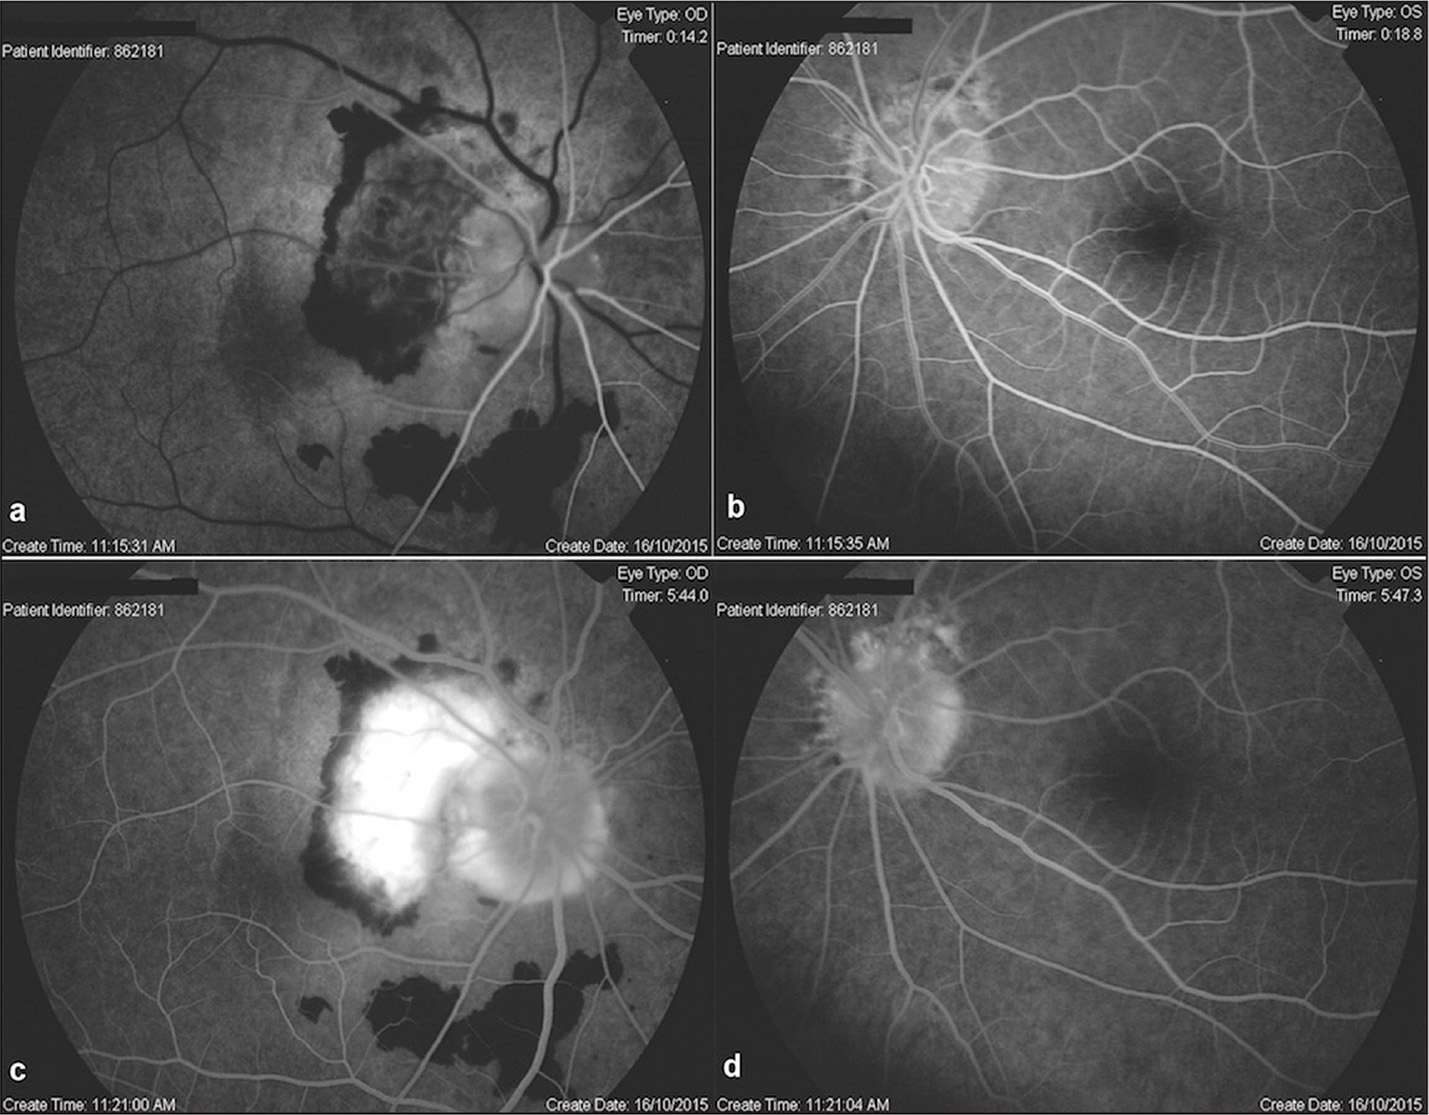 Fundus fluorescein angiography. (A) The right eye at early phase shows hypofluorescence in areas due to hemorrhage, the peripapillary choroidal neovascular membrane (CNVM) superotemporal to the optic disc, and subretinal fluid, of which borders are discriminable, involving the fovea. (B) The left eye at early phase shows mild hyperfluorescence in the peripapillary border. (C) The right eye at late phase shows marked staining of the subretinal neovascular membrane superotemporal to the optic disc and hyperfluorescence of the disc. (D) The left eye at early phase shows mild increase in the hyperfluorescence of the peripapillary border.